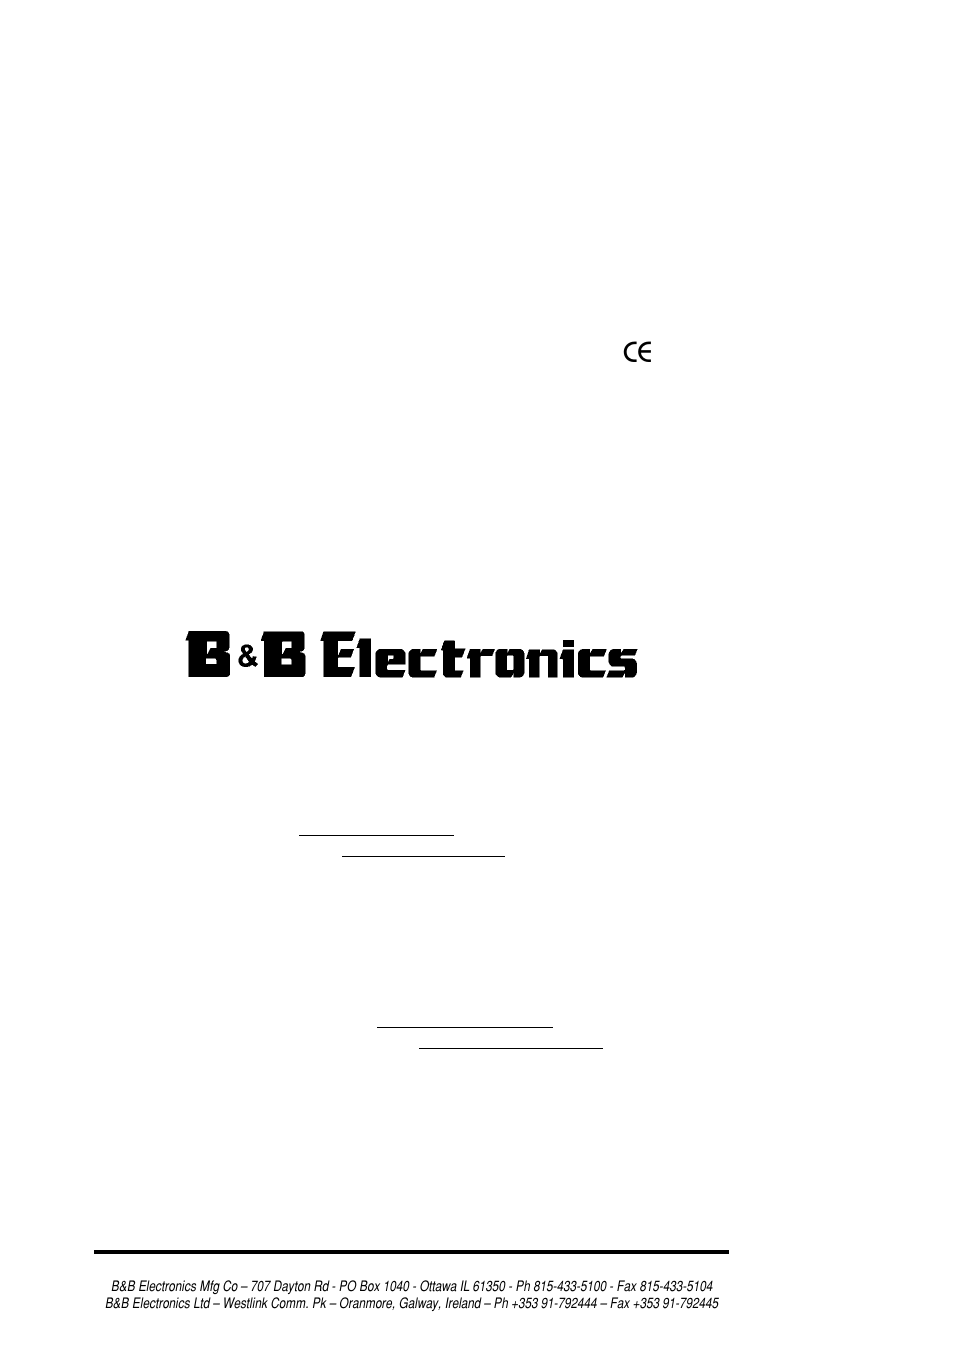 B&B Electronics RS-232/422/485 Serial Card CE 3PXCC4A User Manual | 47 pages